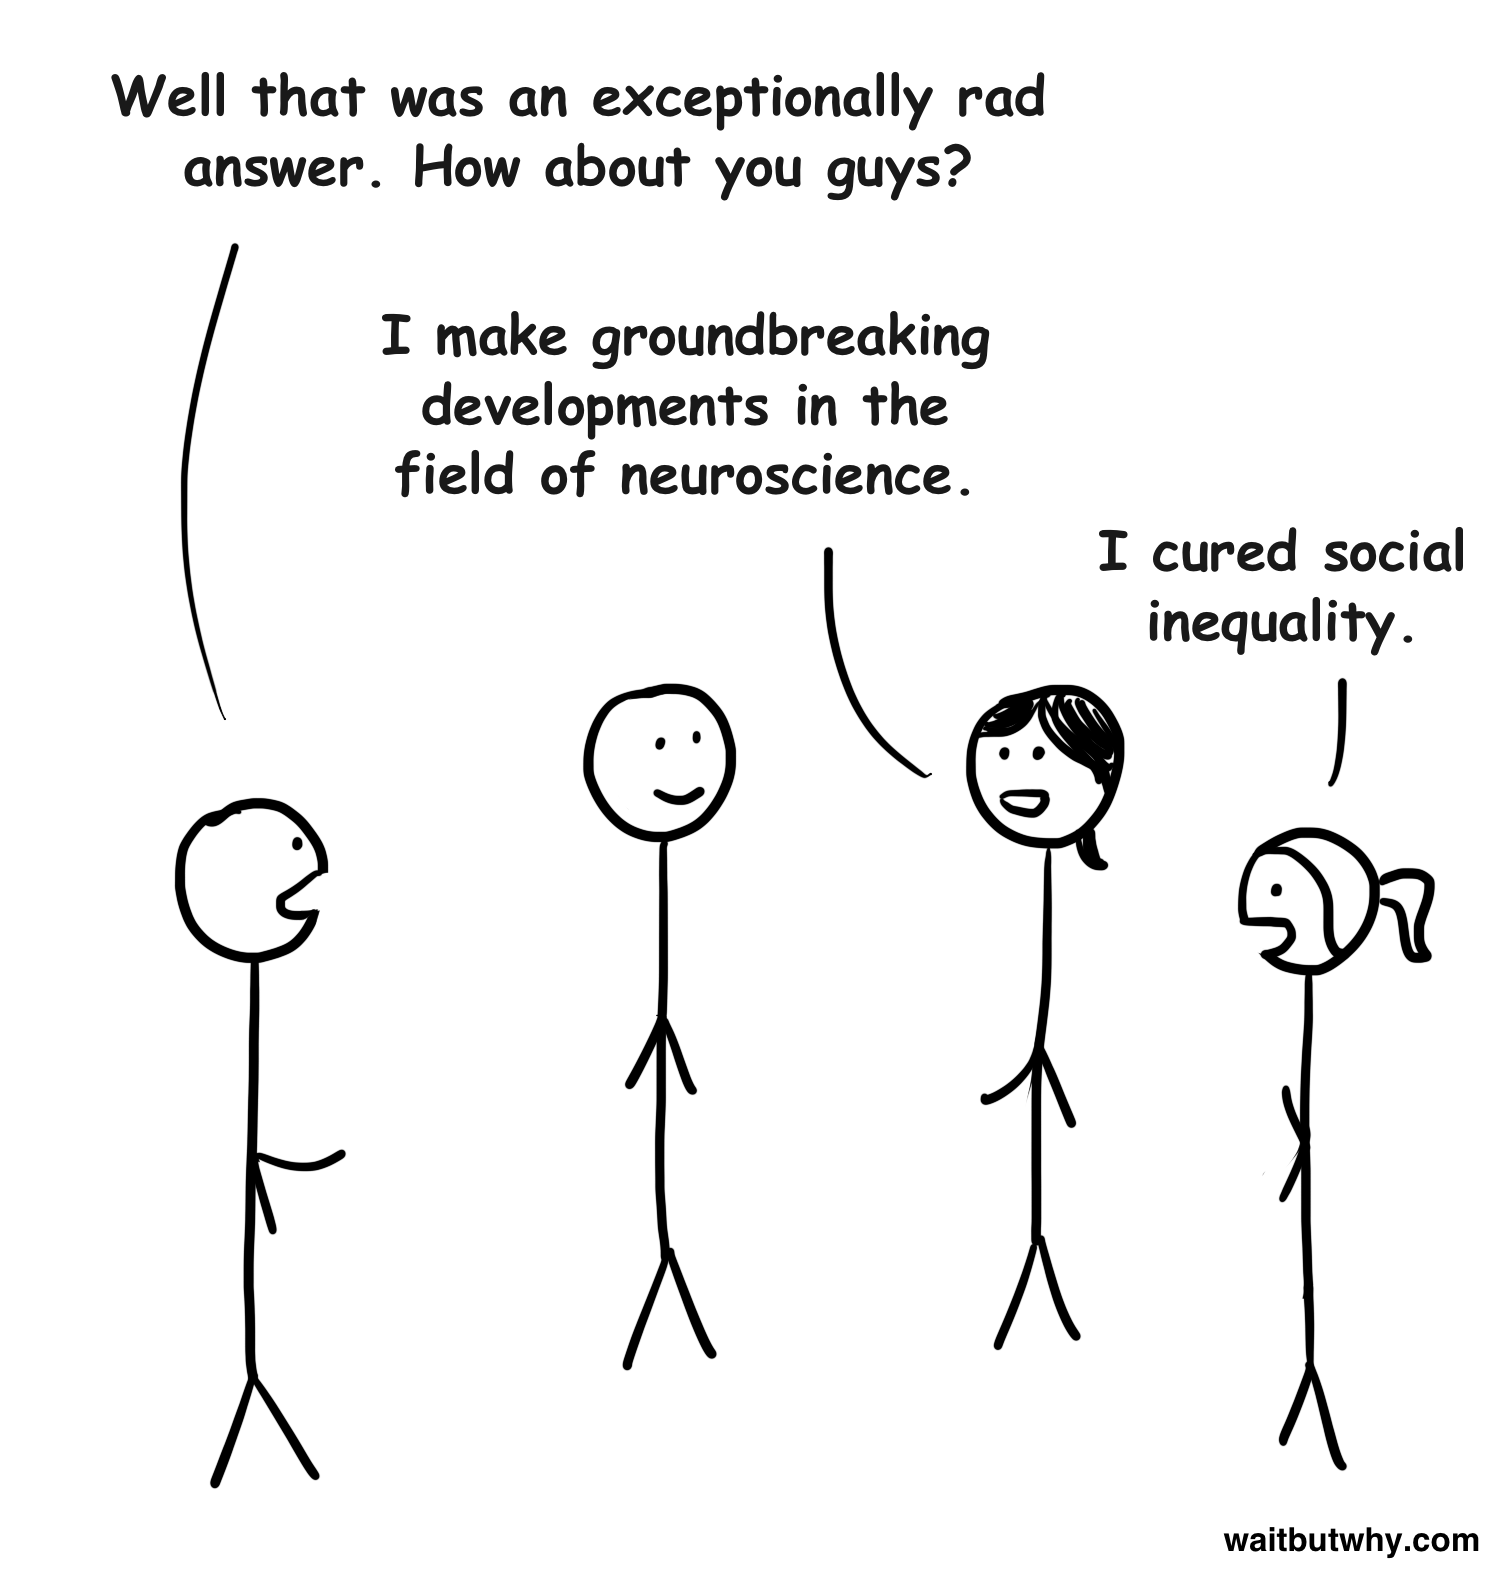 Tim: Well that was an exceptionally rad answer. How about you guys? Stick 2: I make groundbreaking developments in the field of neuroscience. Stick 3: I cured social inequality.